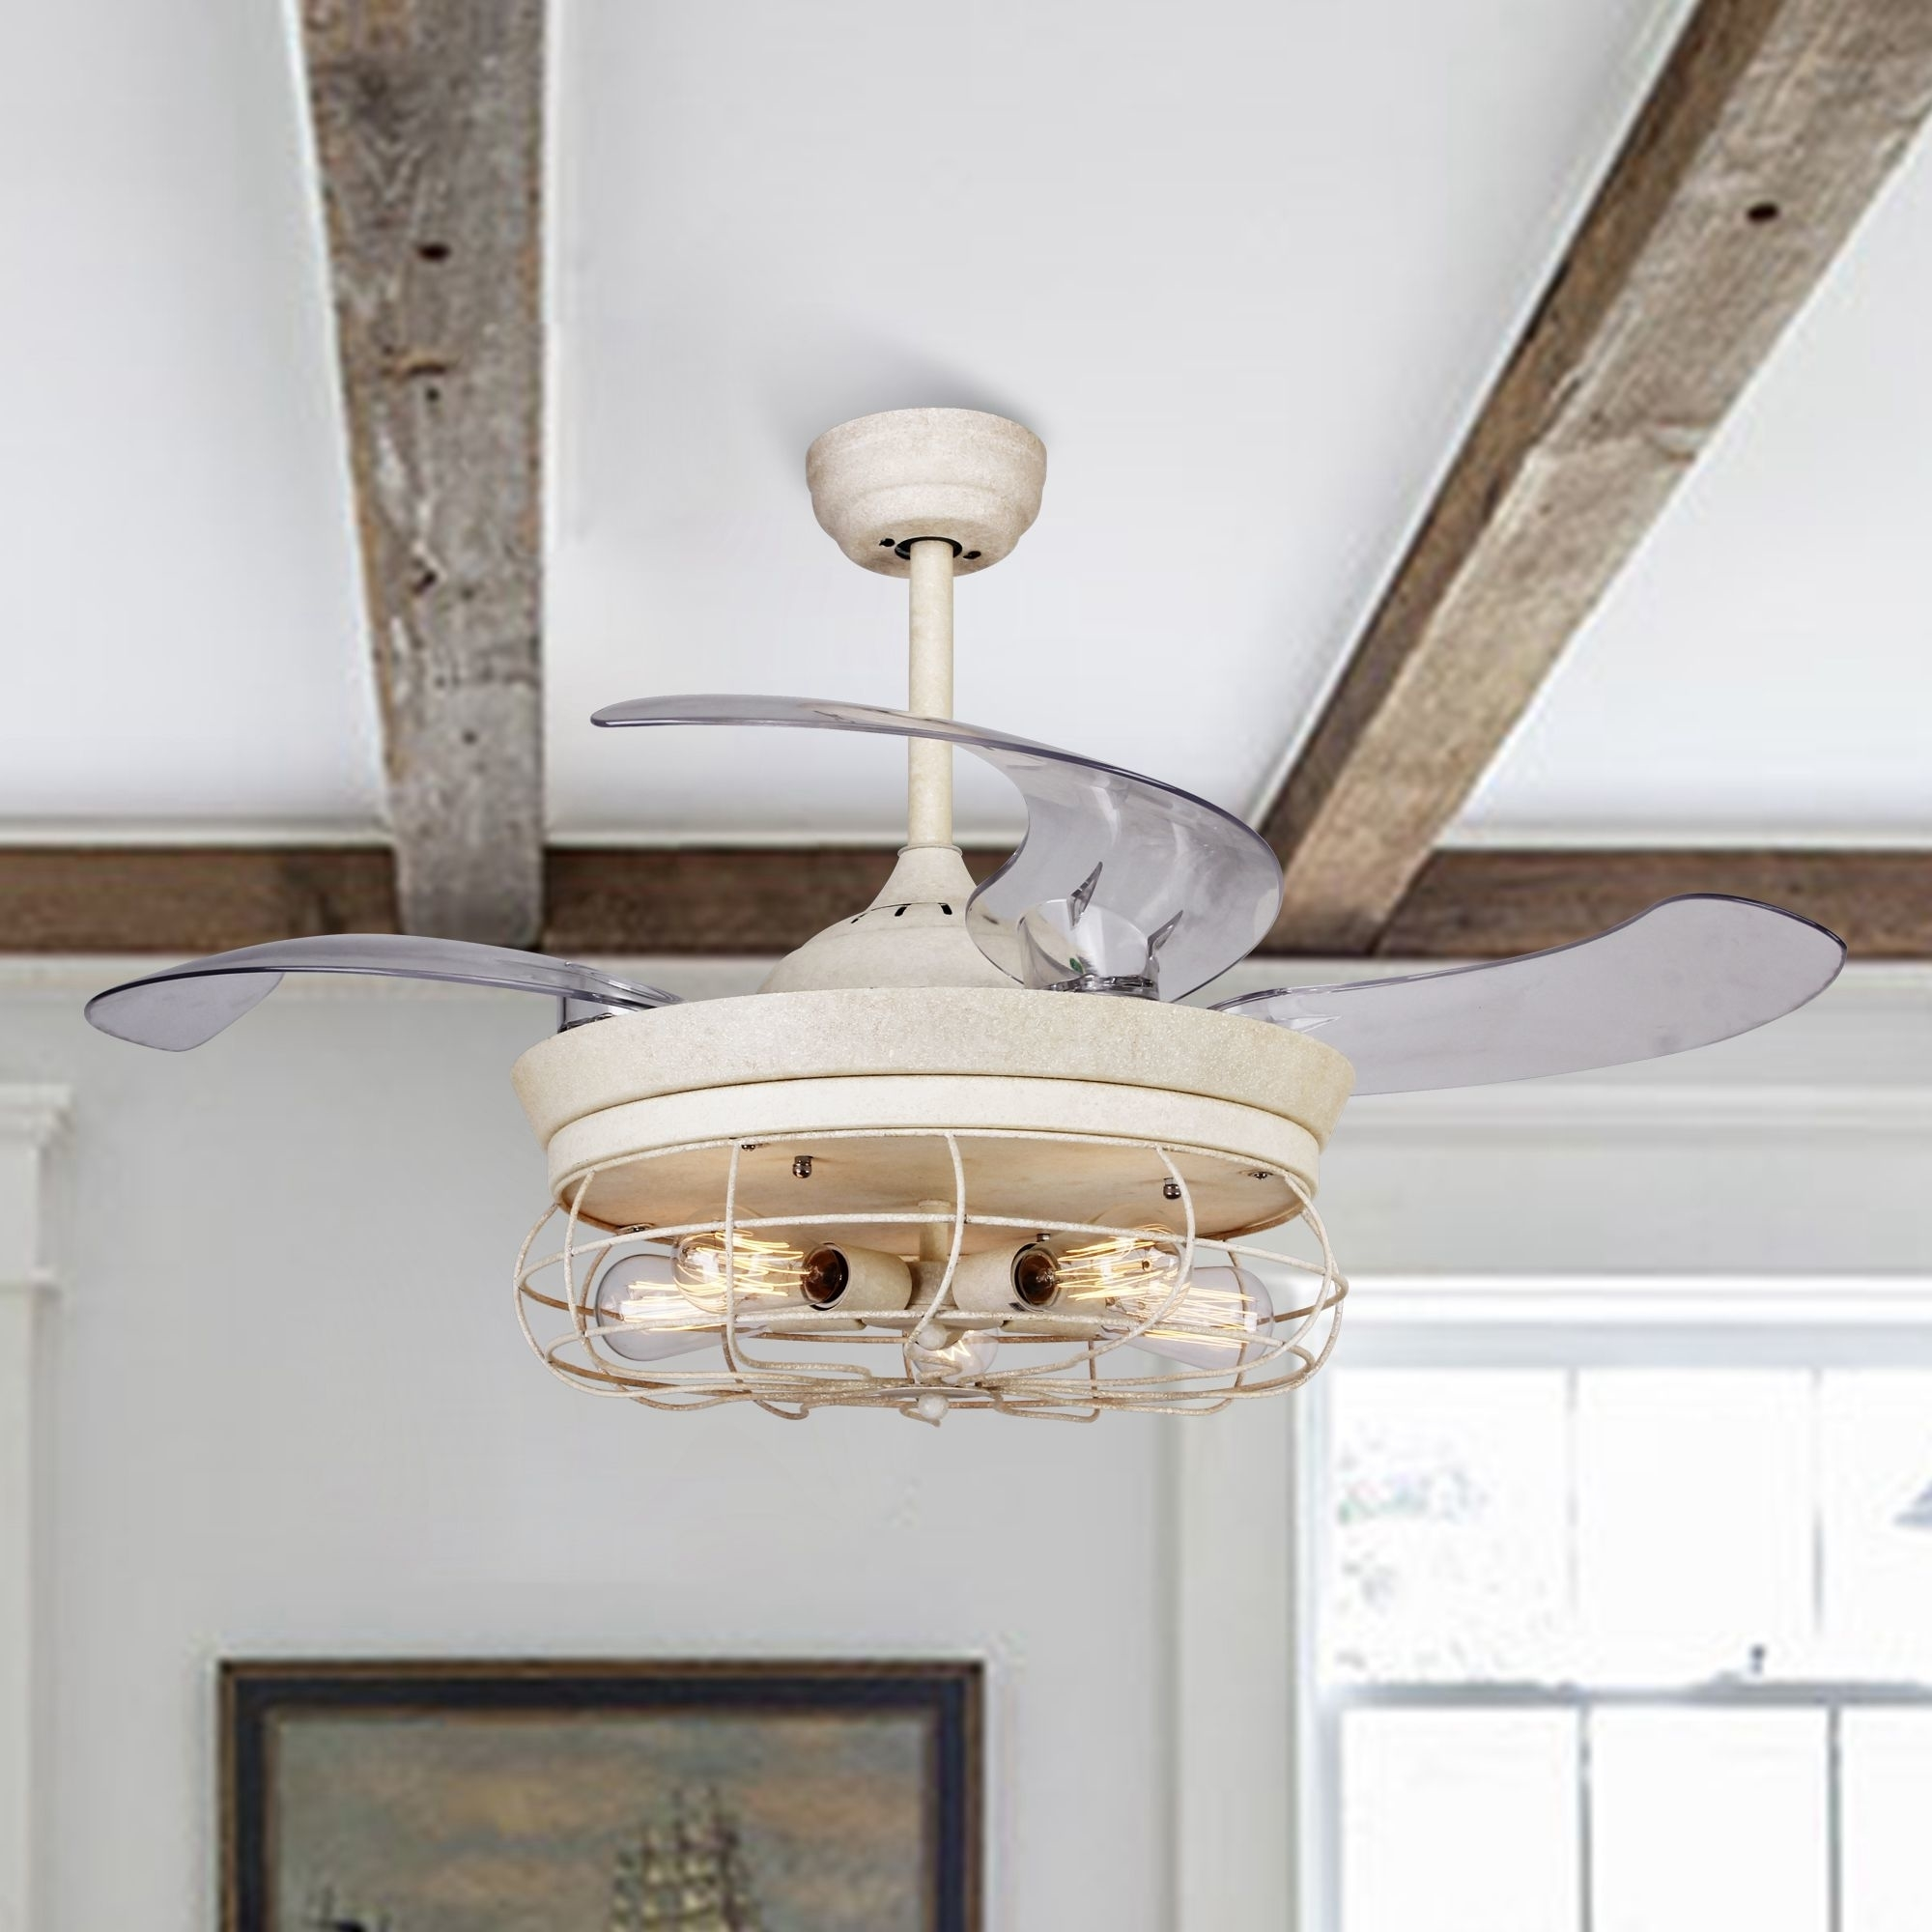 Rustic Ceiling Fan Light Fixtures Us 249 46 Rustic Ceiling Fan With Retractable Blades Light And Remote Antique White In Ceiling Fans From Lights Lighting On Aliexpress